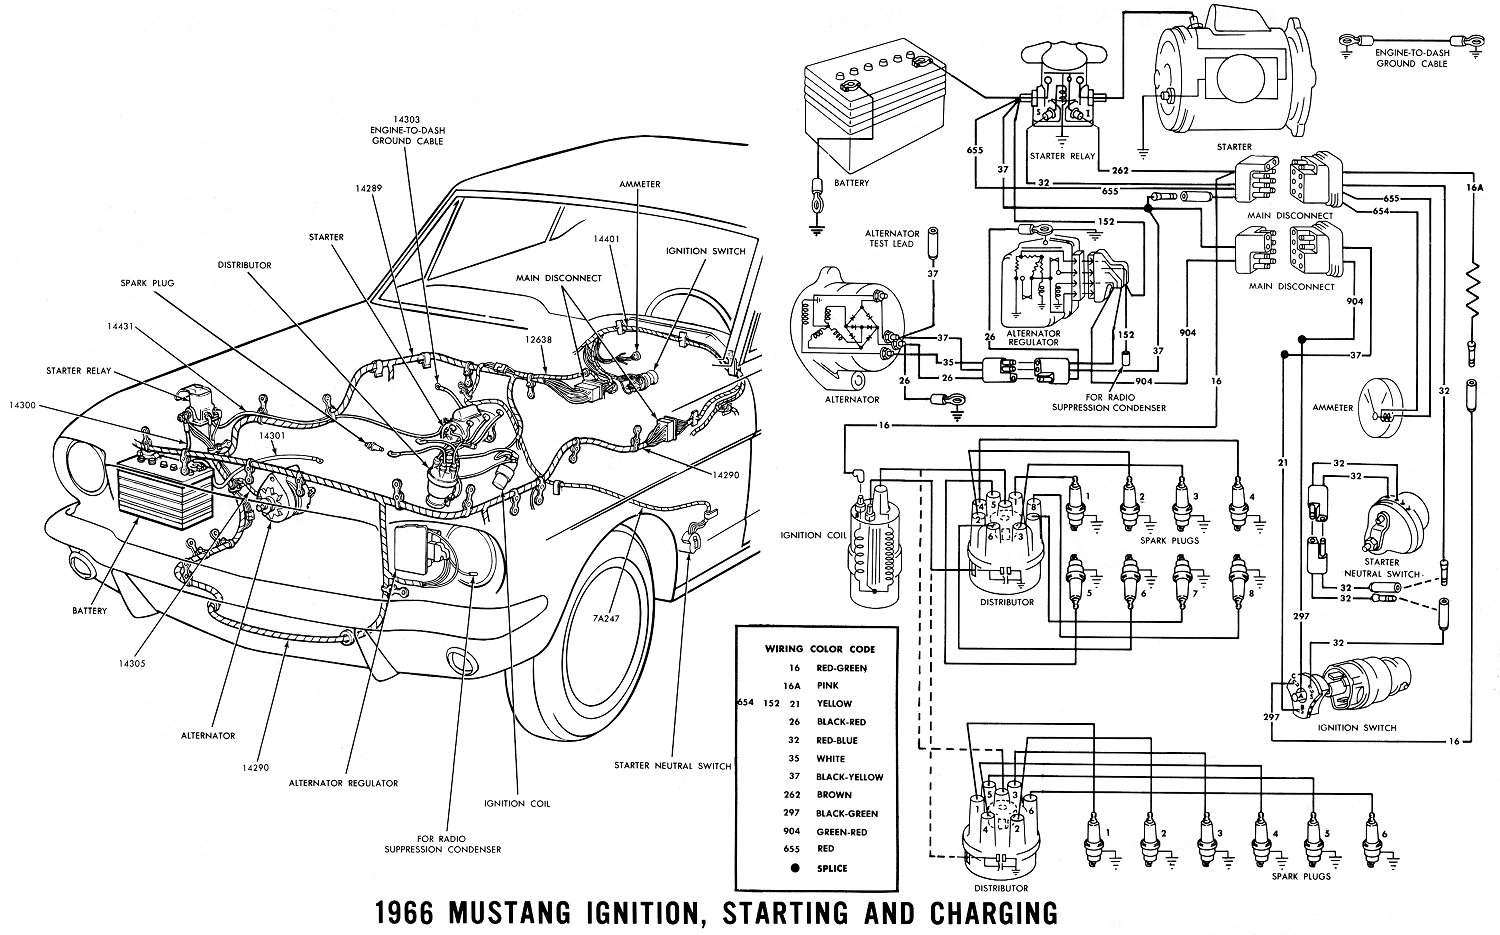 1966 c10 regulator wiring diagram wiring diagram schematics 1968 chevy c10 wiring-diagram voltage regulator wiring diagram 1966 galaxie wiring library camaro wiring diagram 1966 c10 regulator wiring diagram